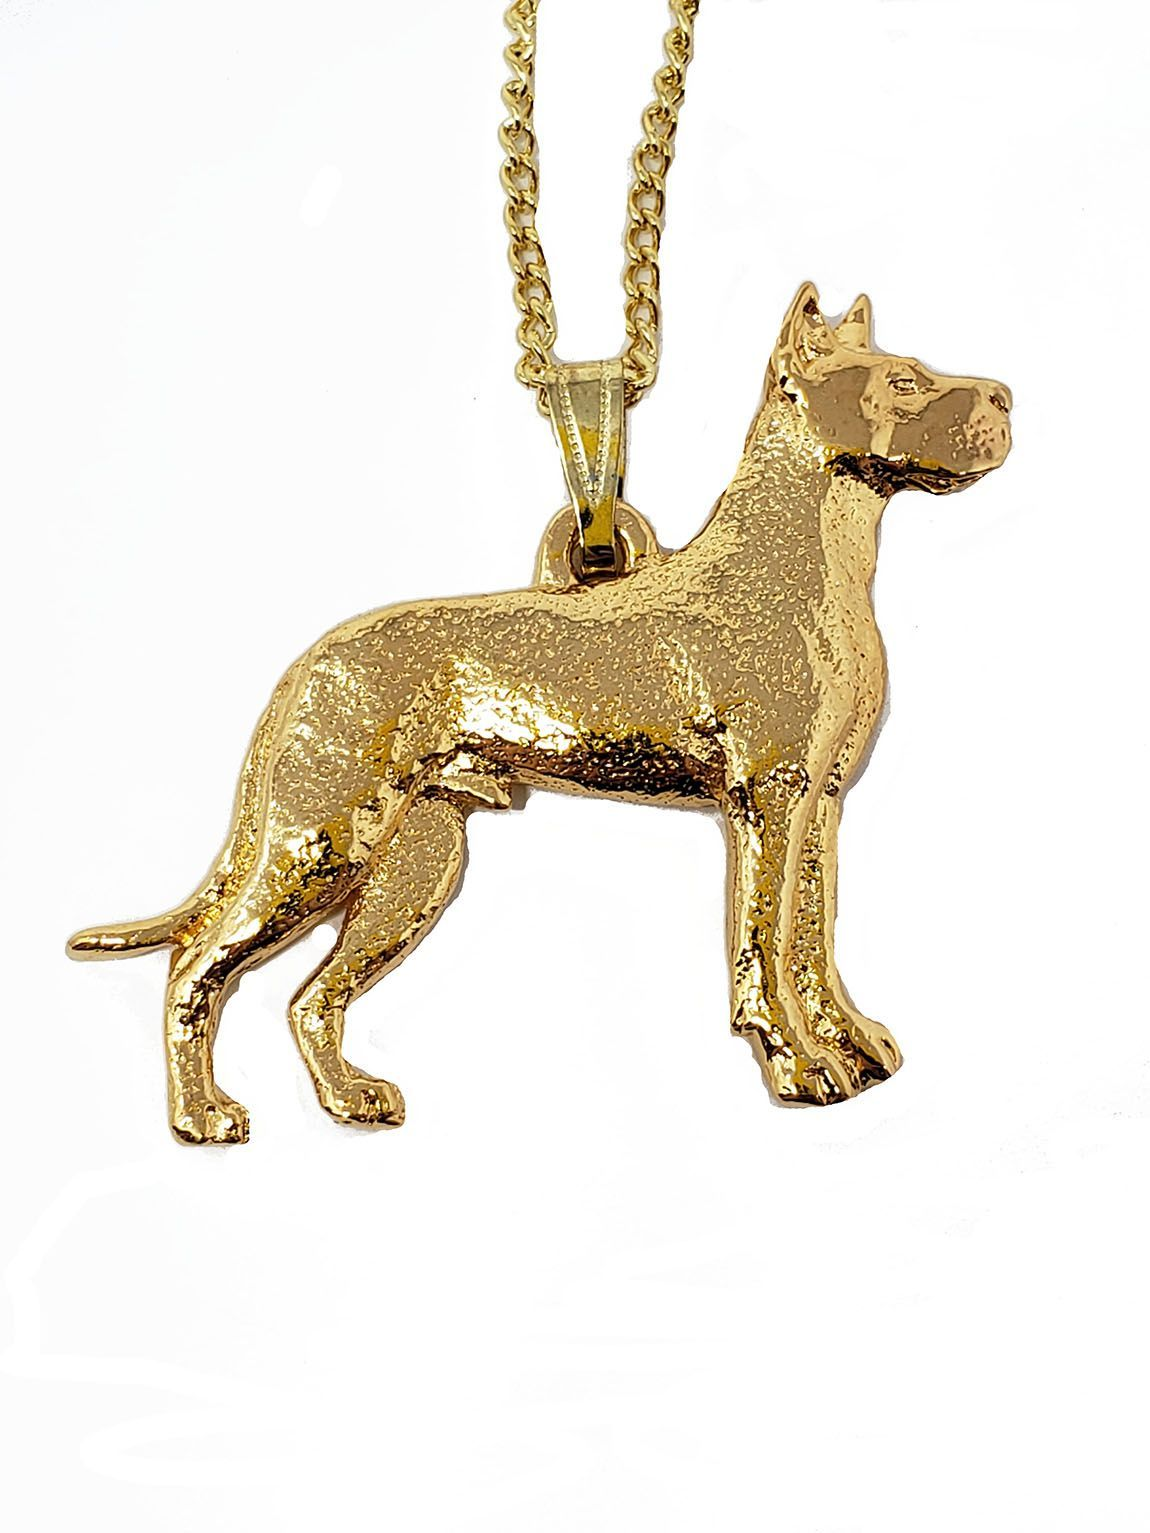 Great Dane 24K Gold Plated Pendant with Necklace